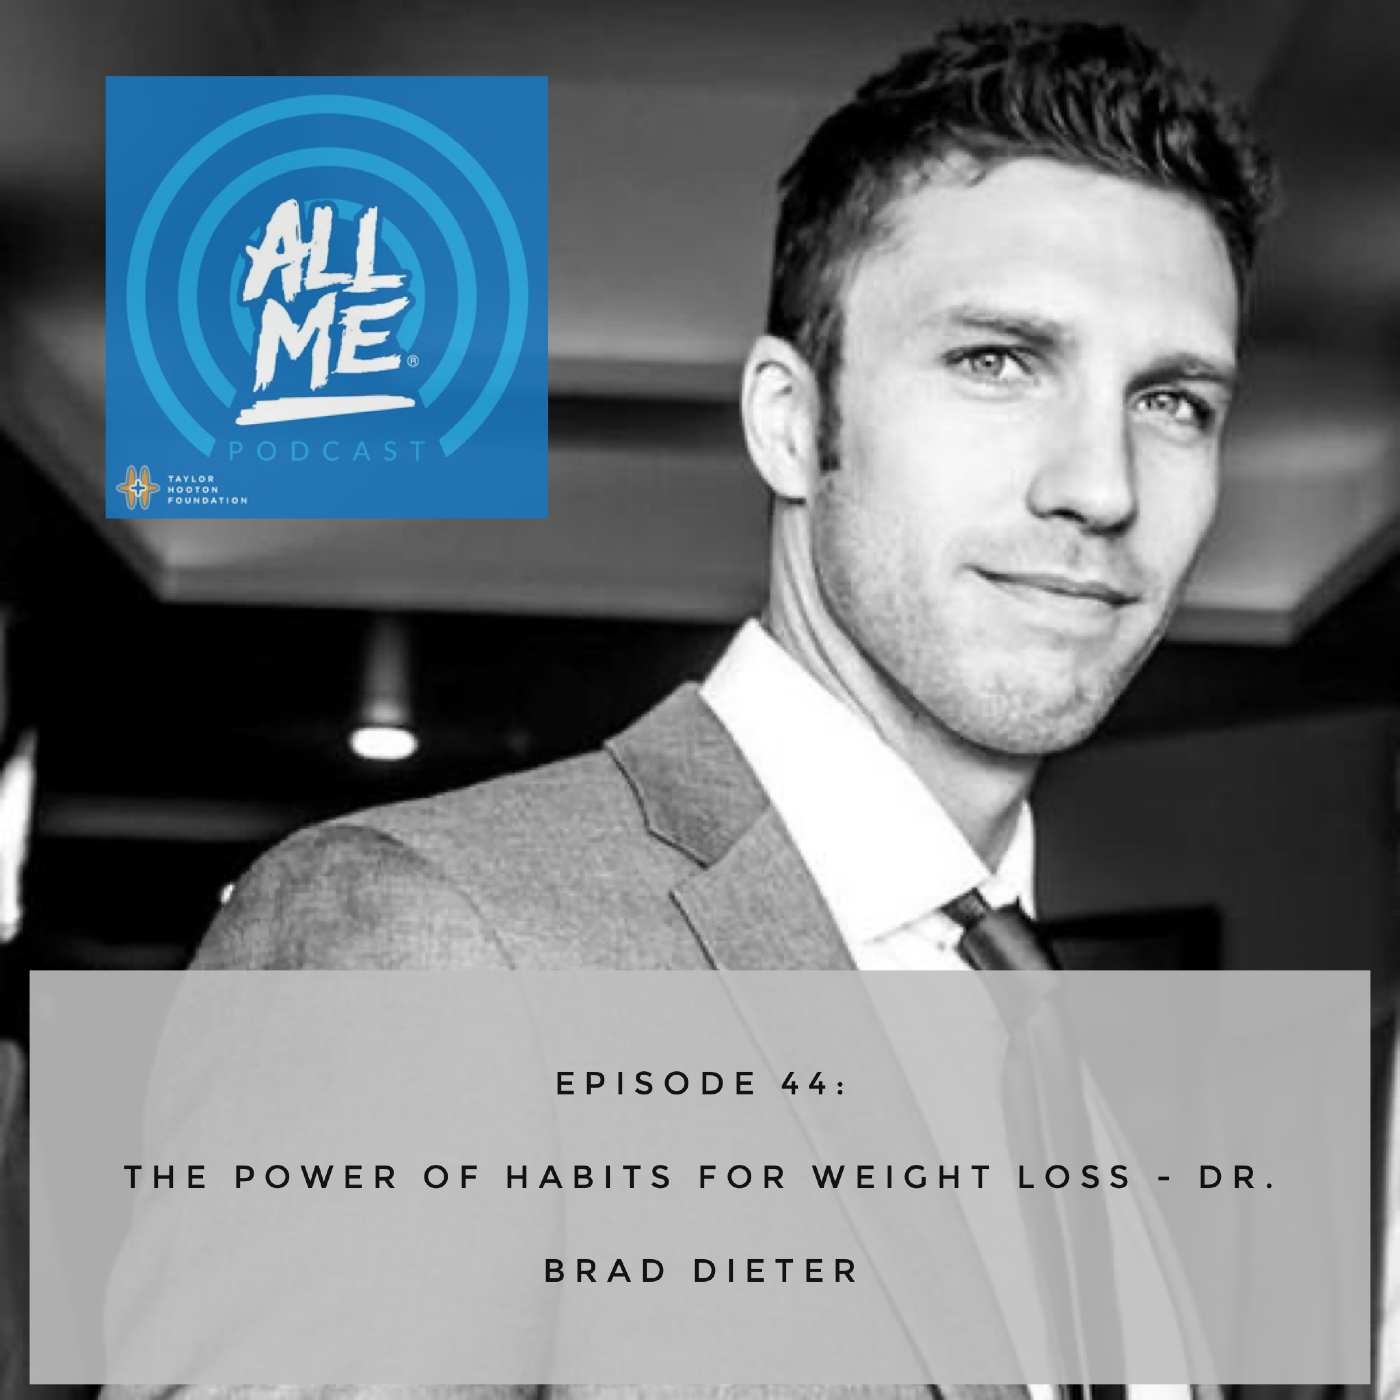 Episode 44: The Power of Habits for Weight Loss - Dr. Brad Dieter